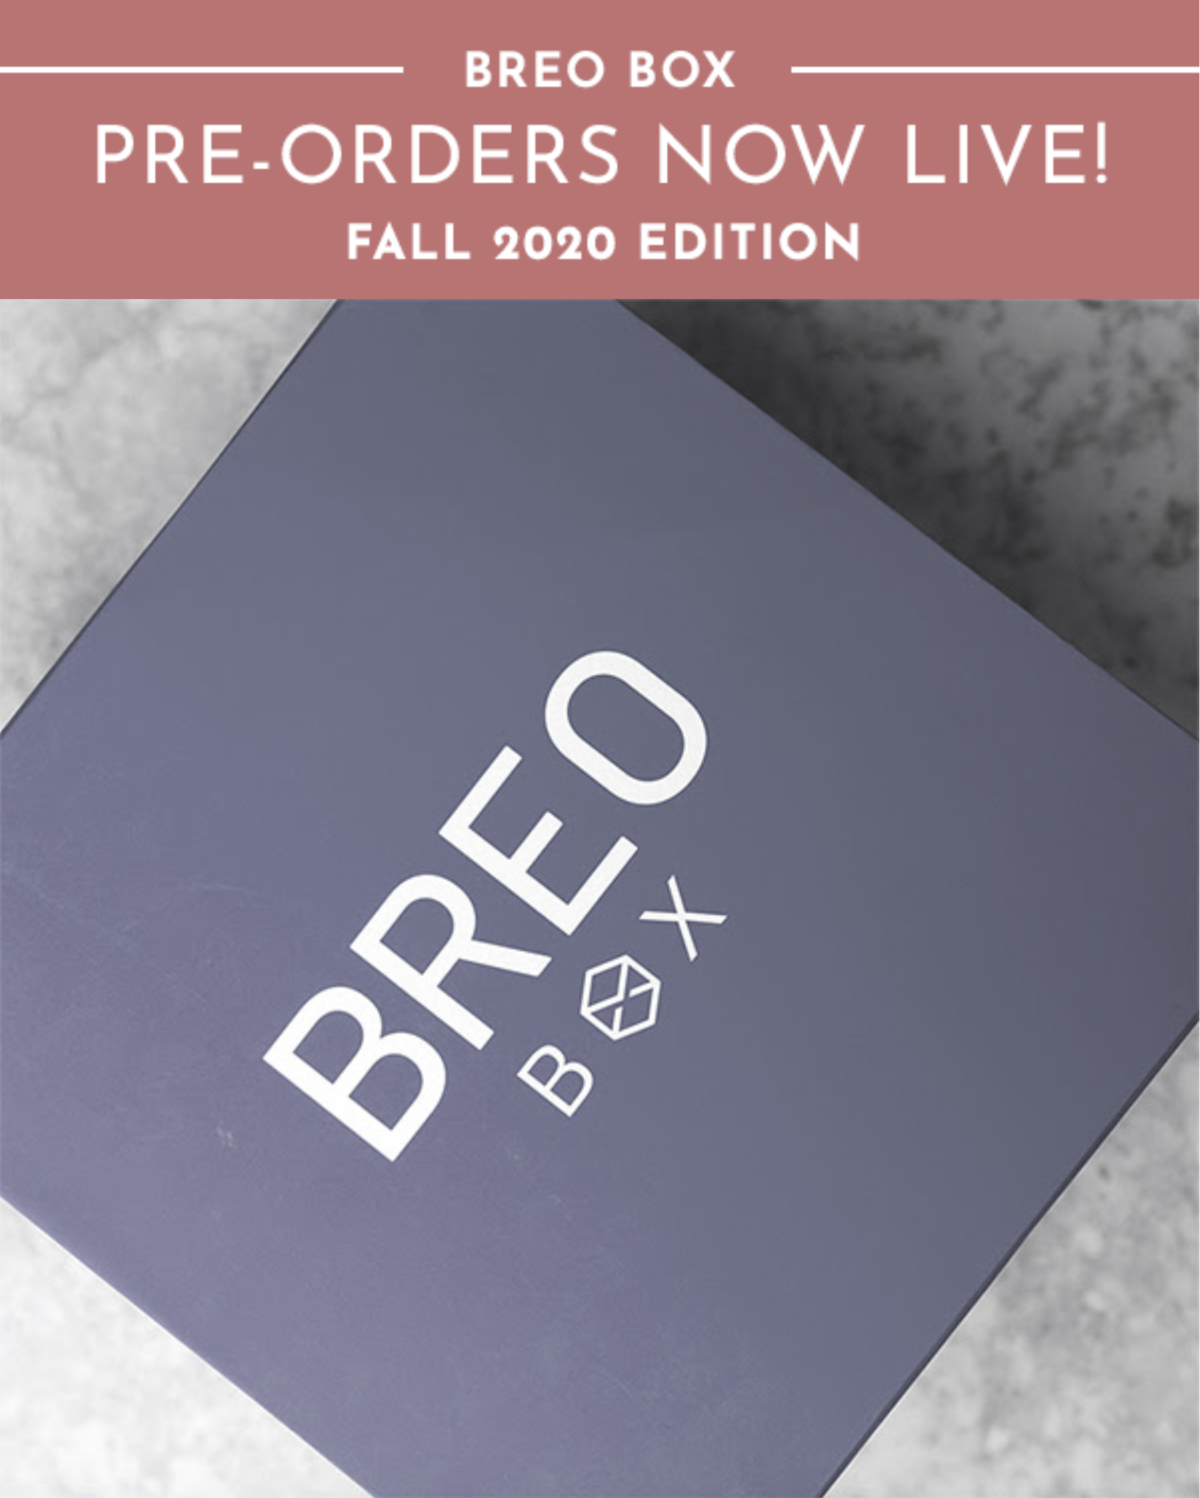 Breo Box Labor Day Coupon Code – Save $25!